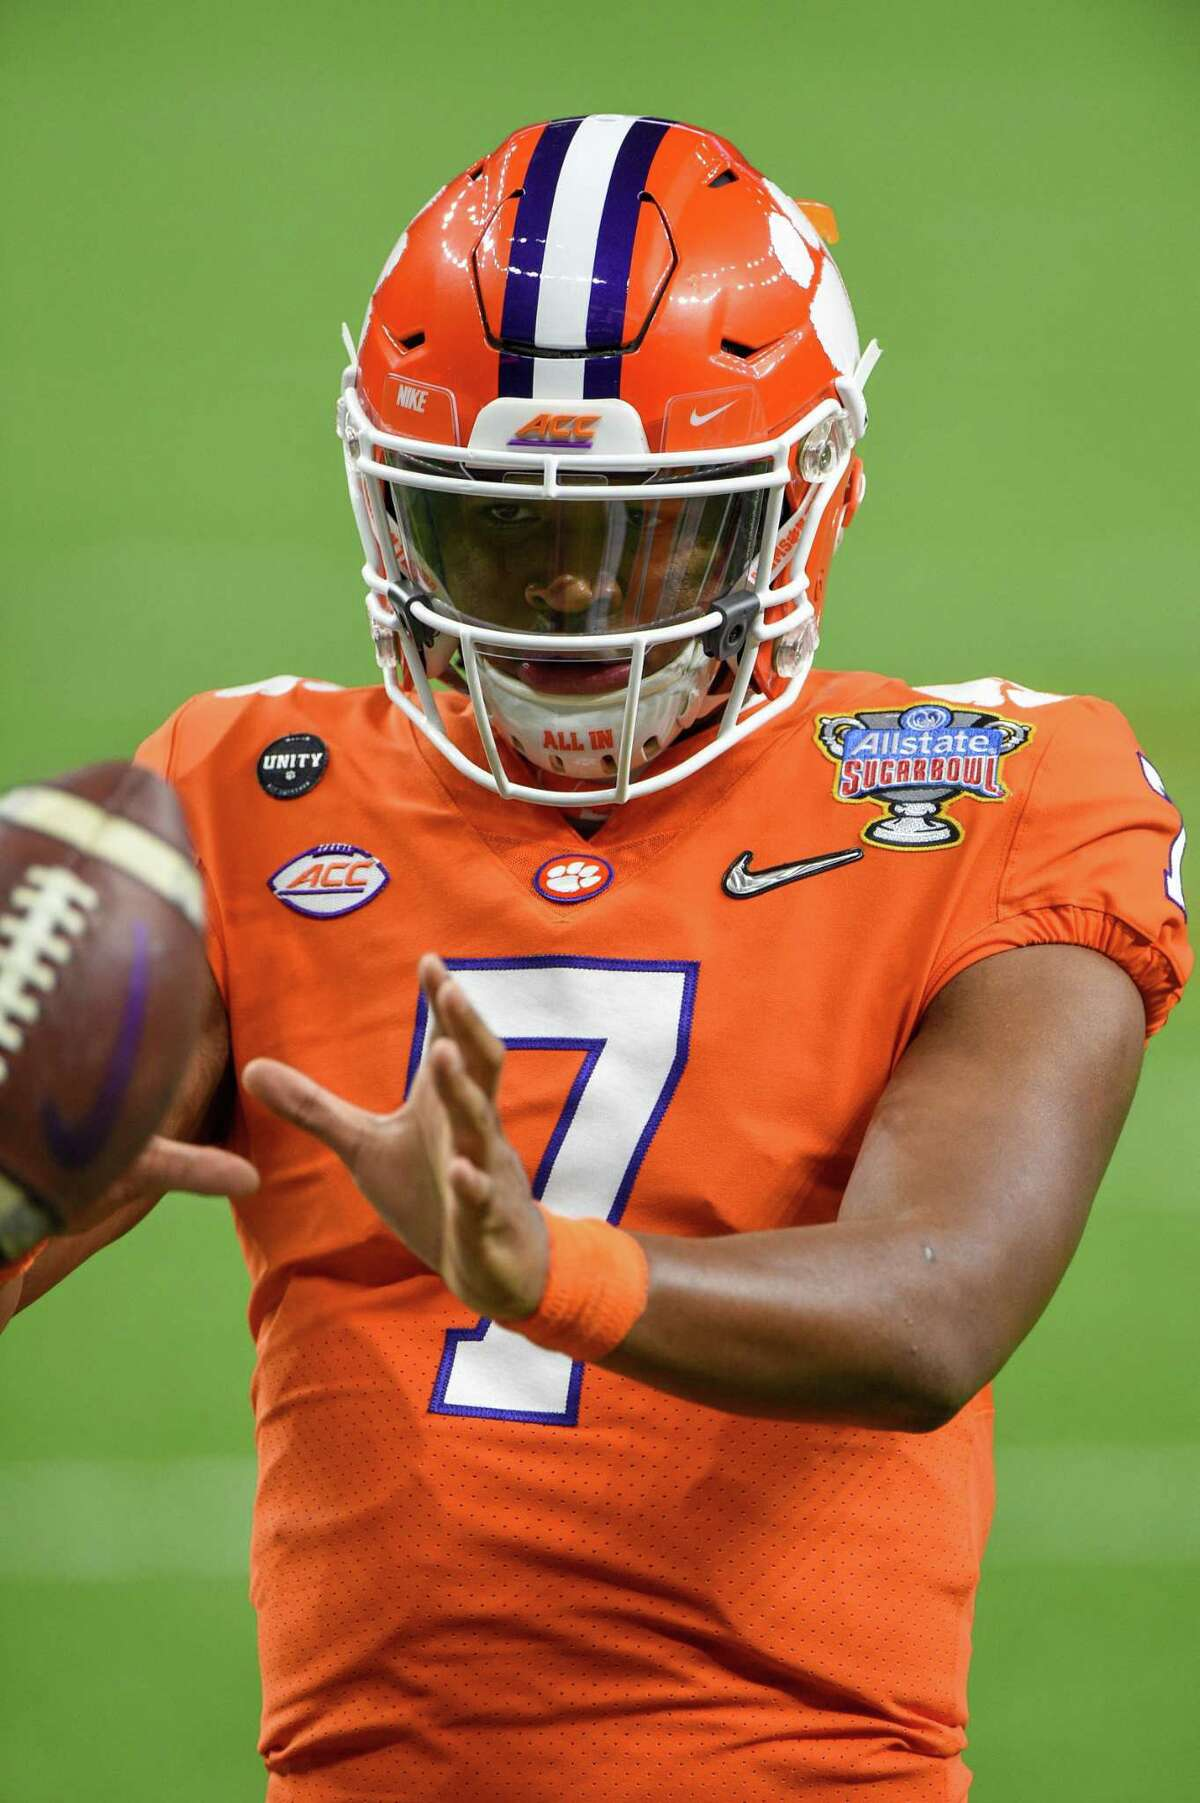 NEW ORLEANS, LA - JANUARY 01: Clemson Tigers quarterback Taisun Phommachanh (7) warms up before the Allstate Sugar Bowl College Football Playoff Semifinal between the Ohio State Buckeyes and Clemson Tigers at the Mercedes-Benz Superdome on January 1, 2021 in New Orleans, LA. (Photo by Ken Murray/Icon Sportswire via Getty Images)